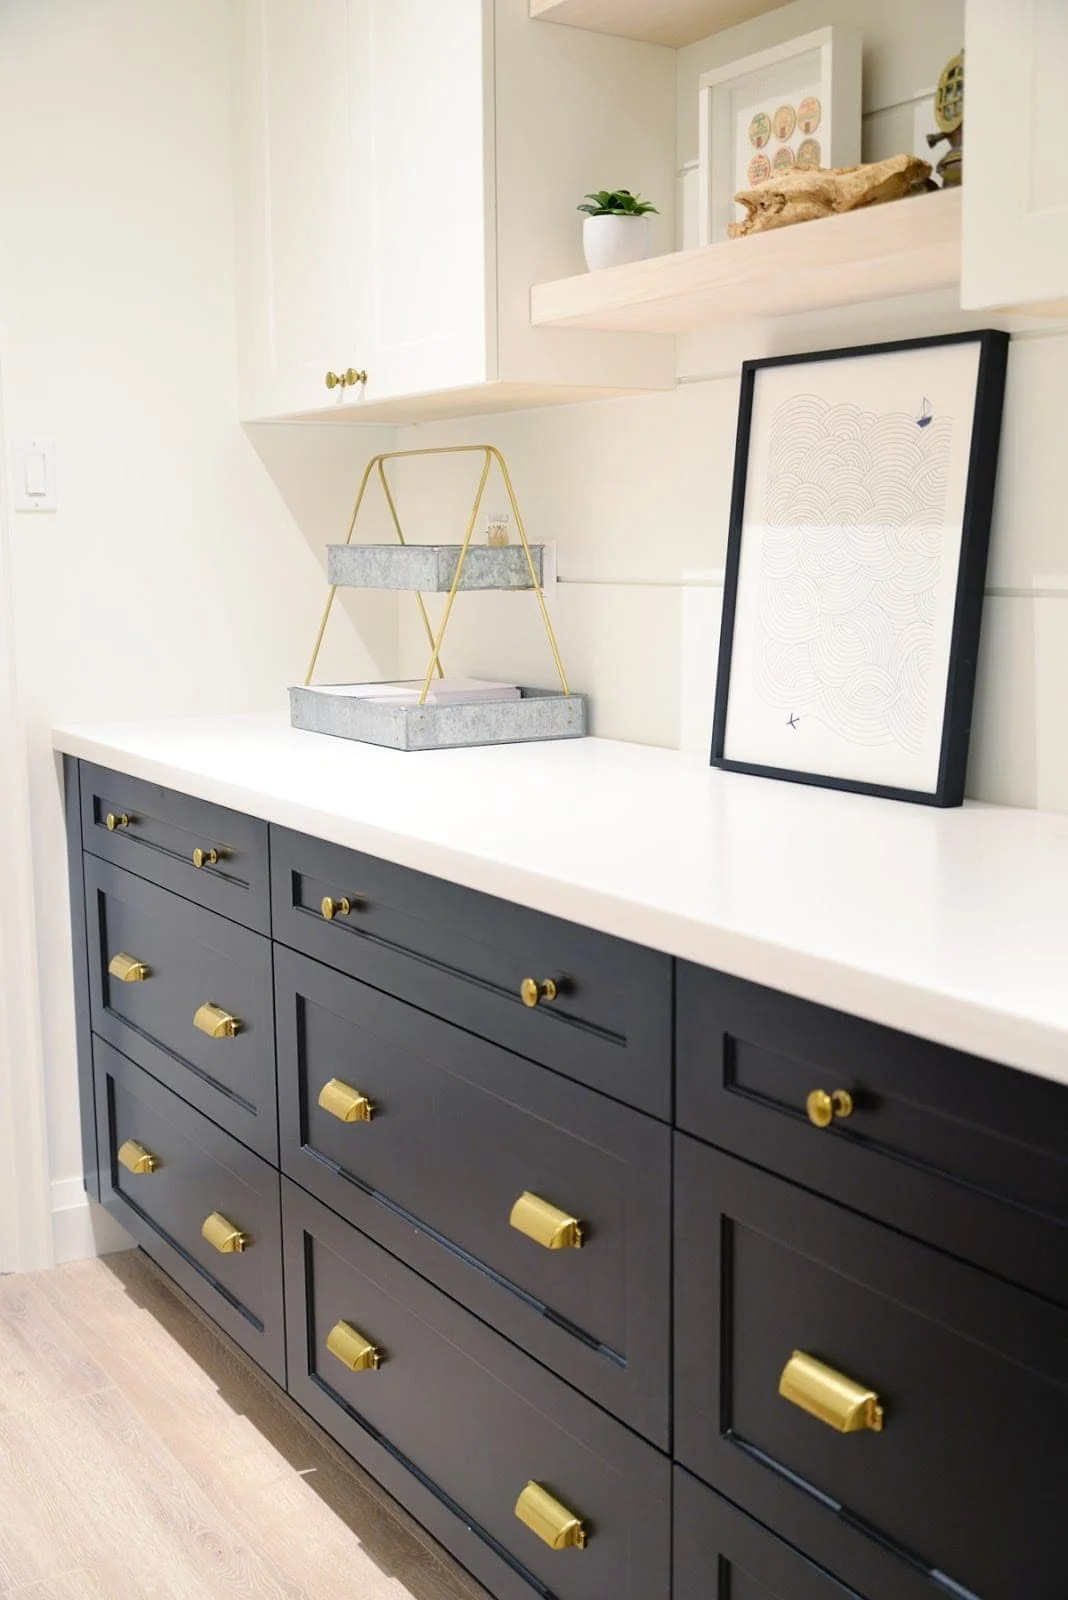 Use drawers instead of cabinets to store craft items for optimal craft room storage and organization